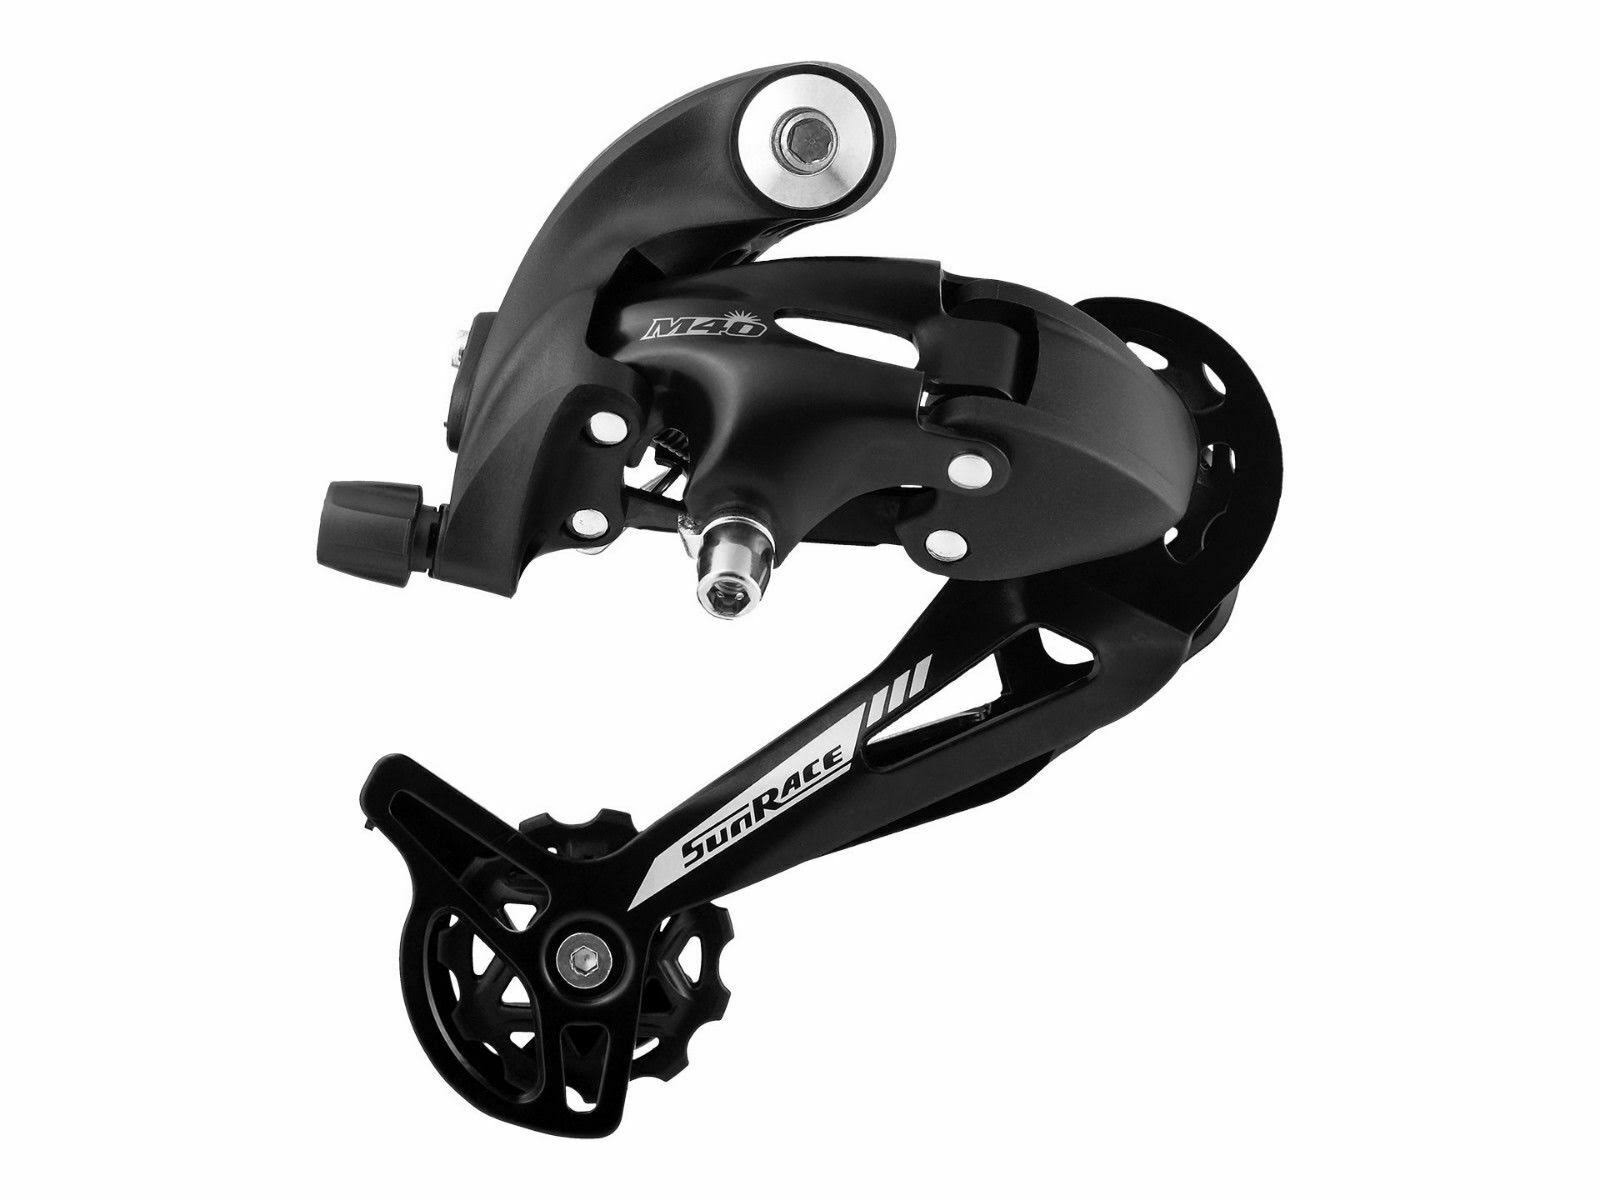 Sunrace RD-M41 MTB Bike Rear Derailleur